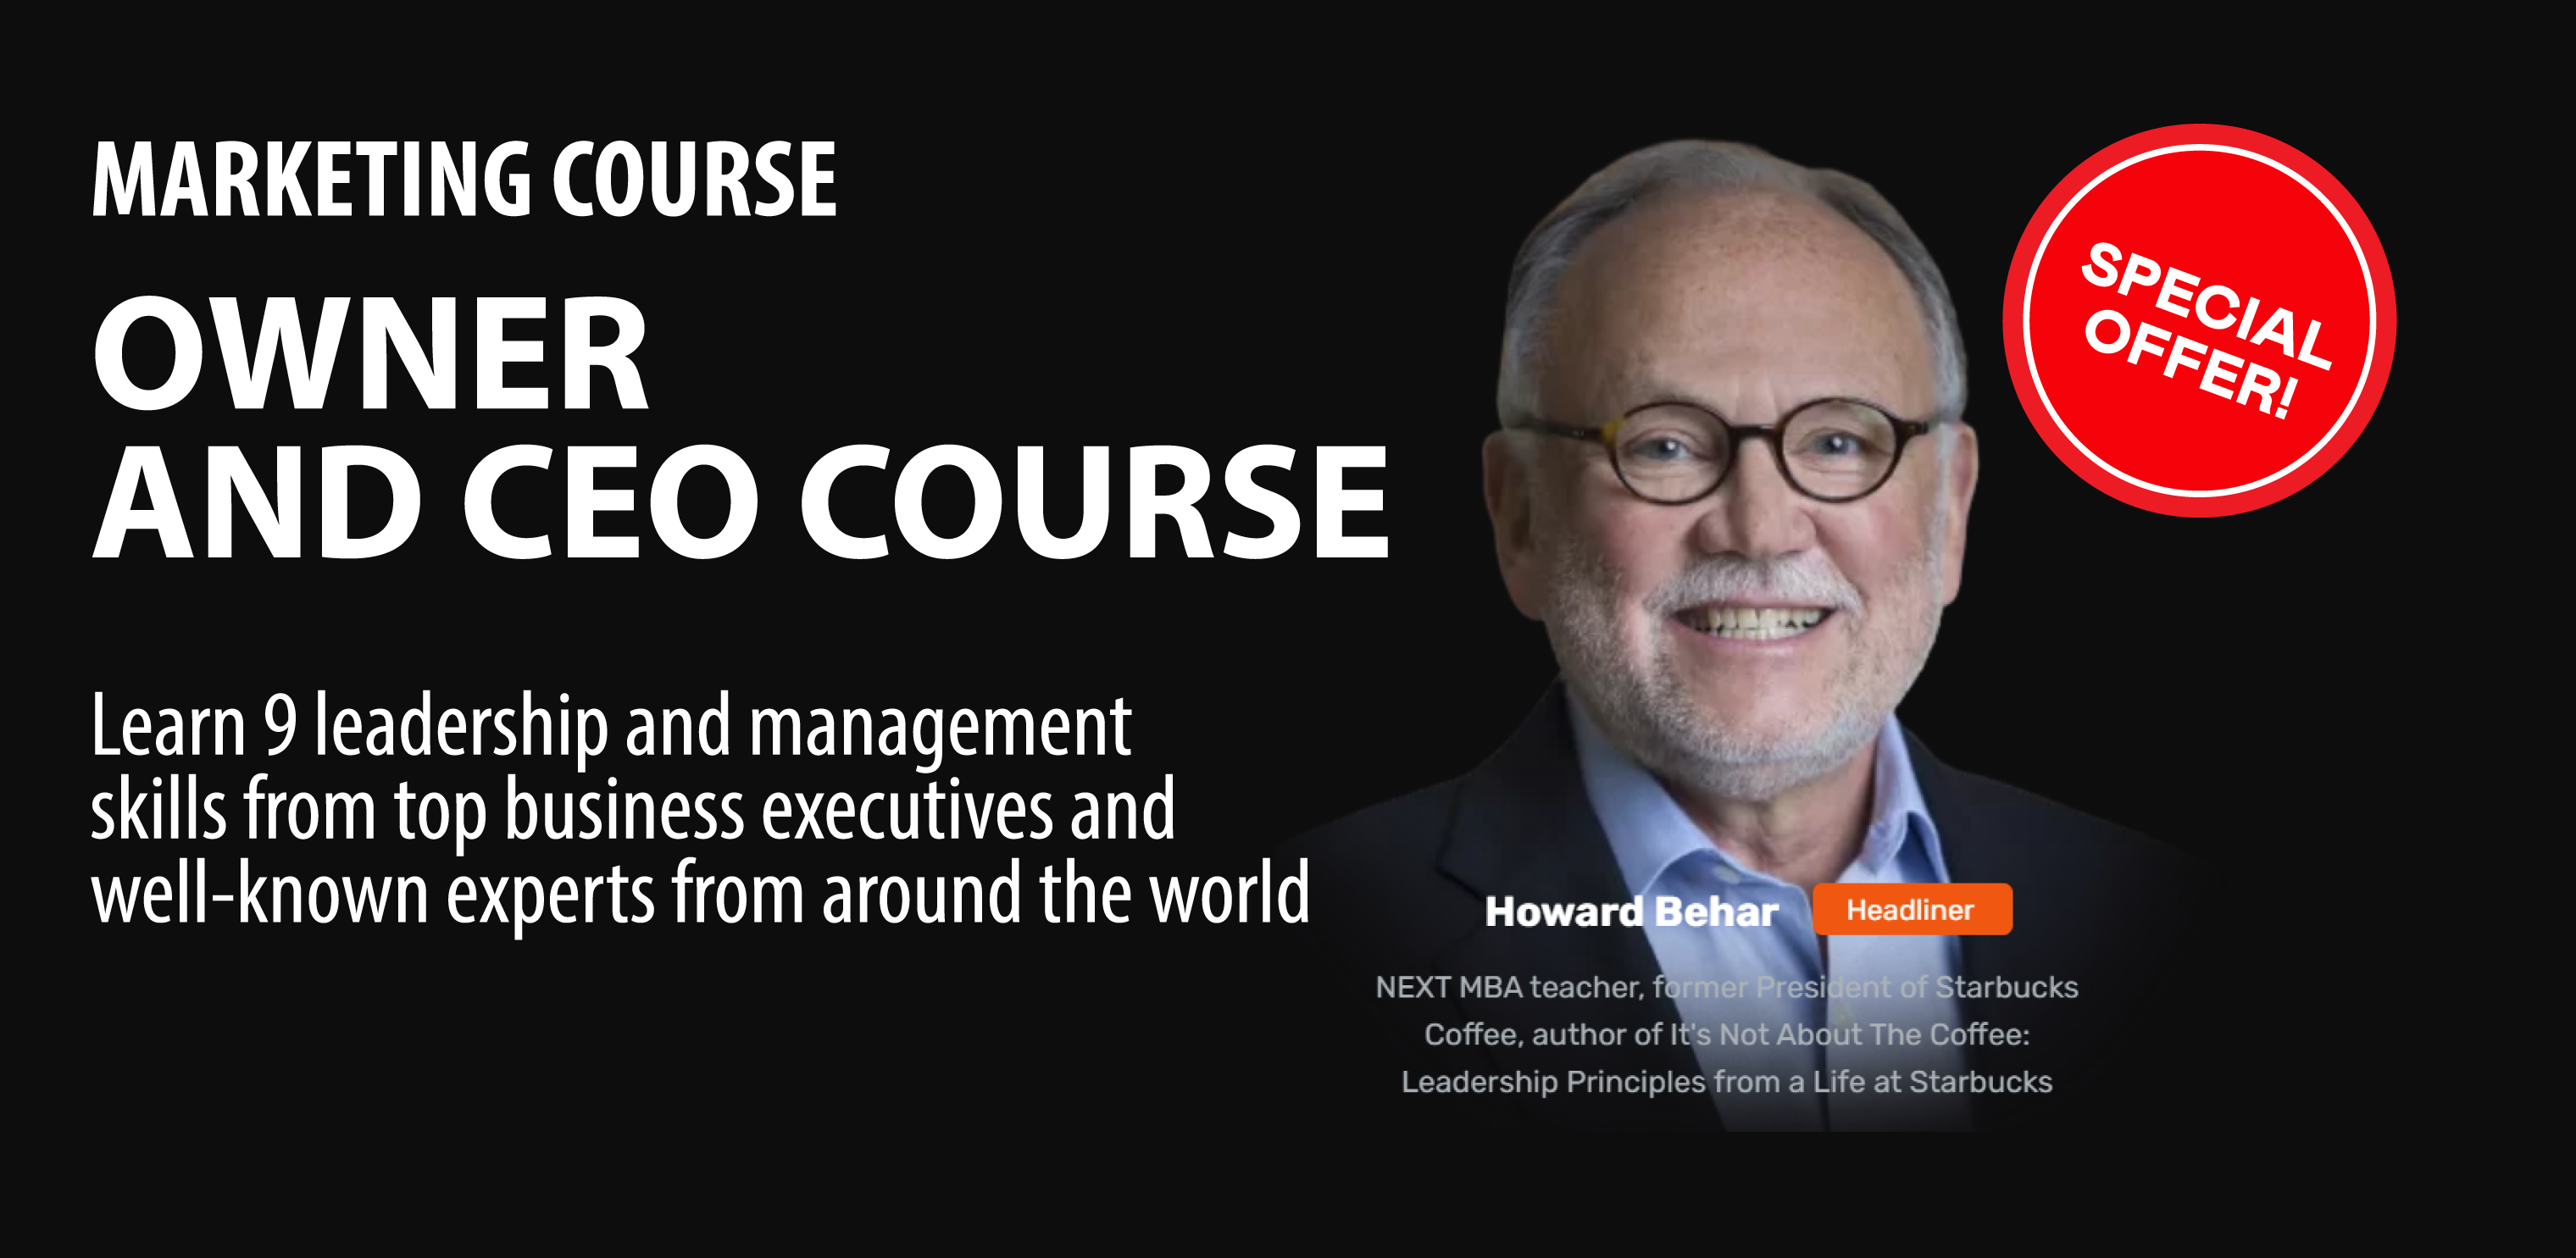 OWNER AND CEO COURSE